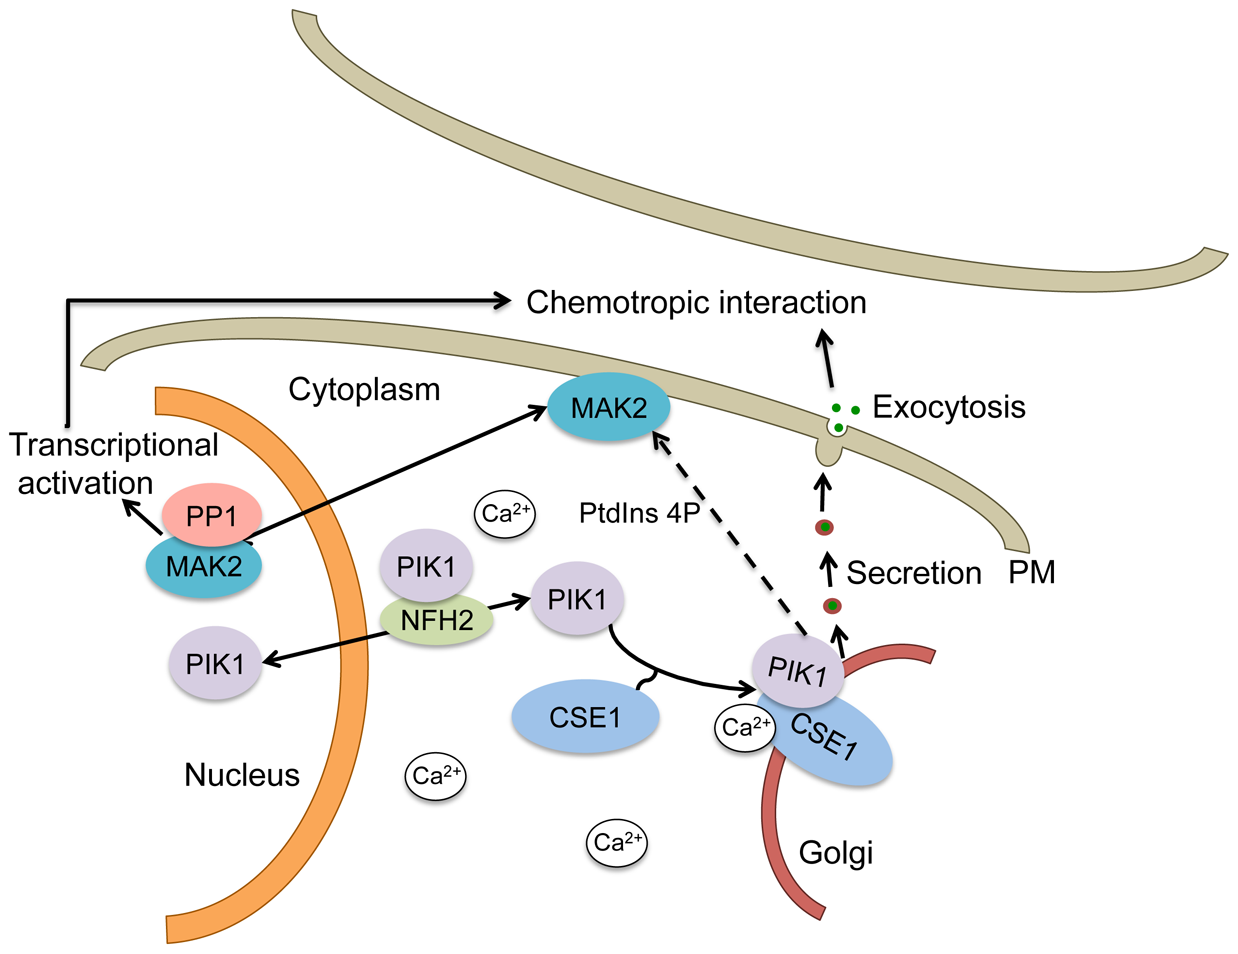 Schematic of a mechanistic model for the regulation of secretion by CSE1, PIK1 and NFH2 during germling chemotropic interactions and cell fusion.